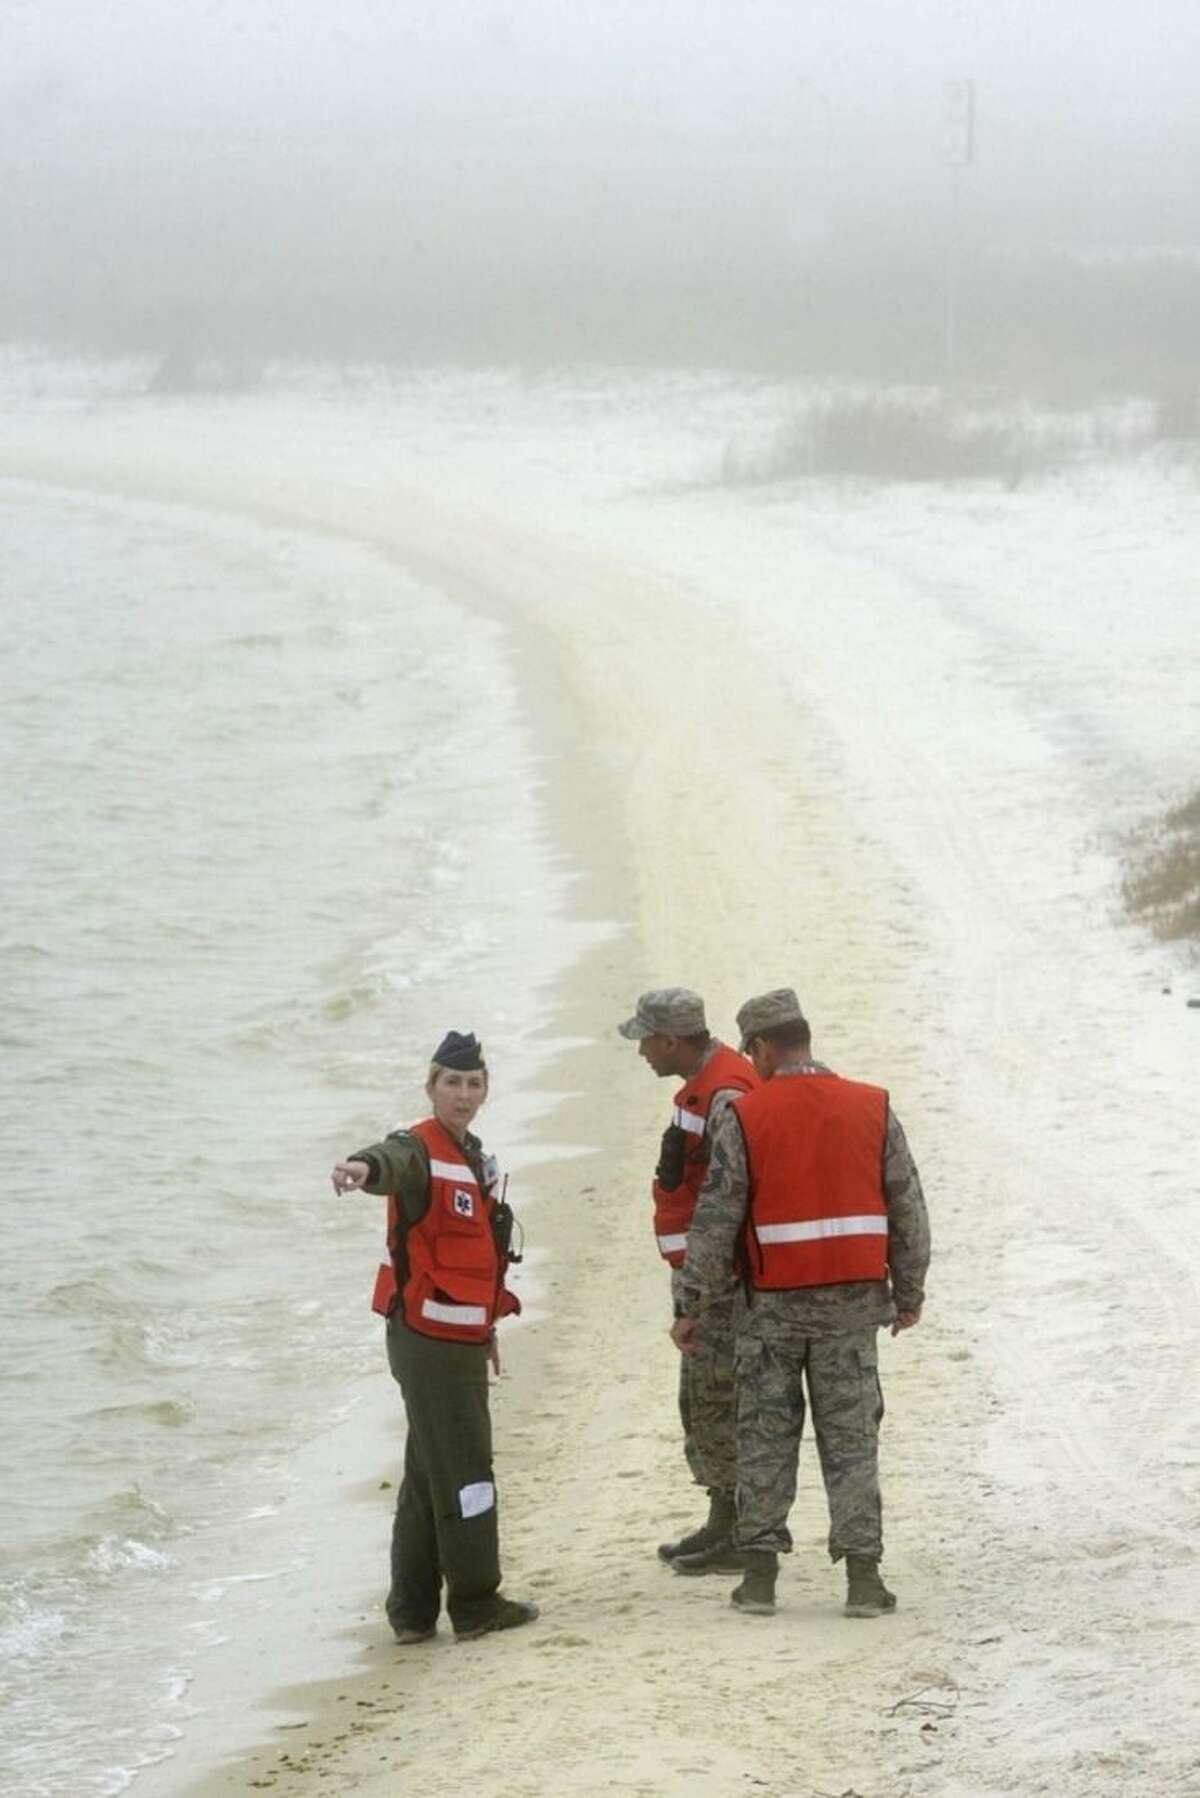 Unidentified military personnel search the shoreline of Santa Rosa Island near Navarre, Fla. Wednesday, March 11, 2015 near the site where an Army Black Hawk helicopter went down Tuesday evening with 11 service members aboard. (AP Photo/Northwest Florida Daily News, Devon Ravine)